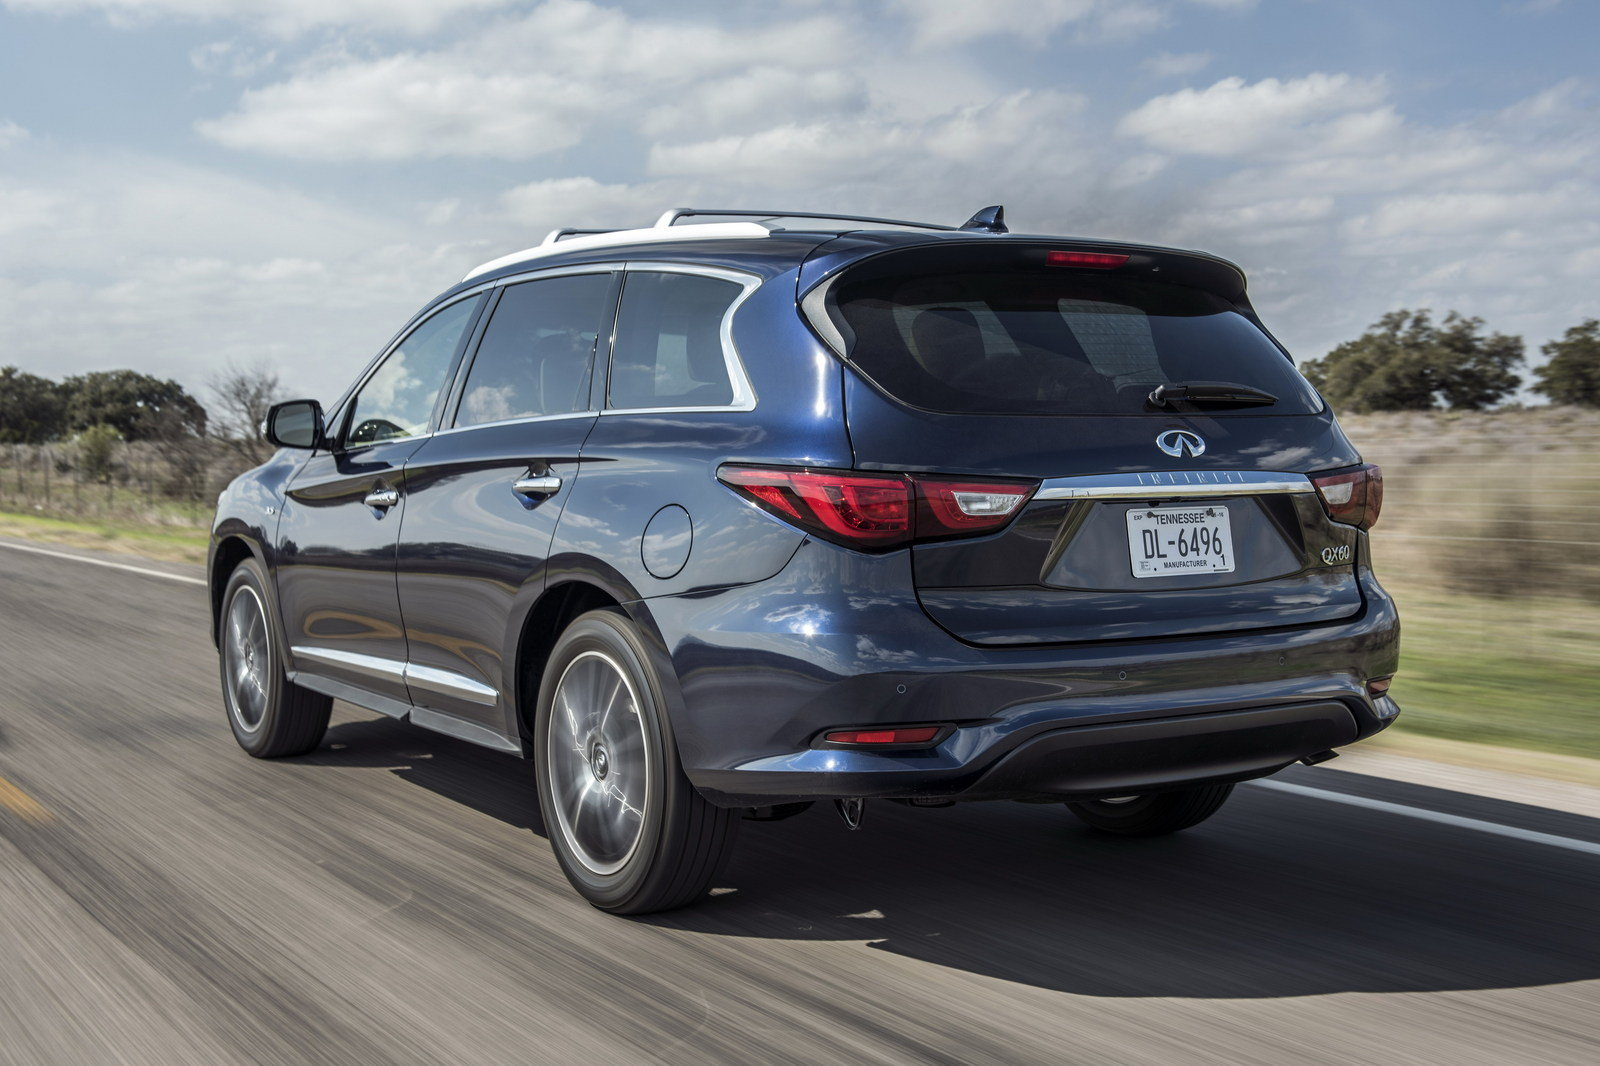 2016 infiniti qx60 picture 666973 car review top speed. Black Bedroom Furniture Sets. Home Design Ideas